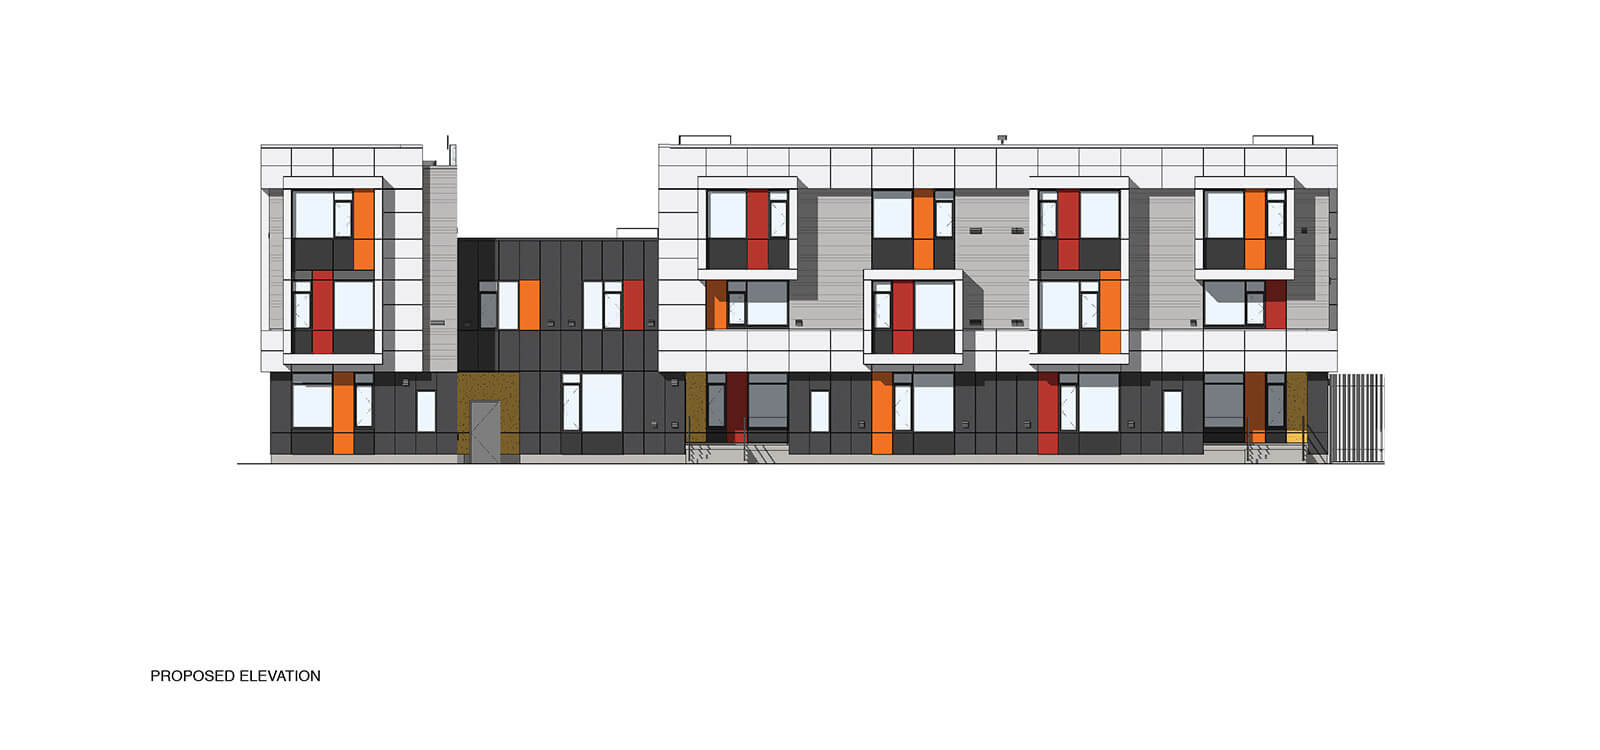 studio vara multifamily 626 mission bay blvd. drawing elevation